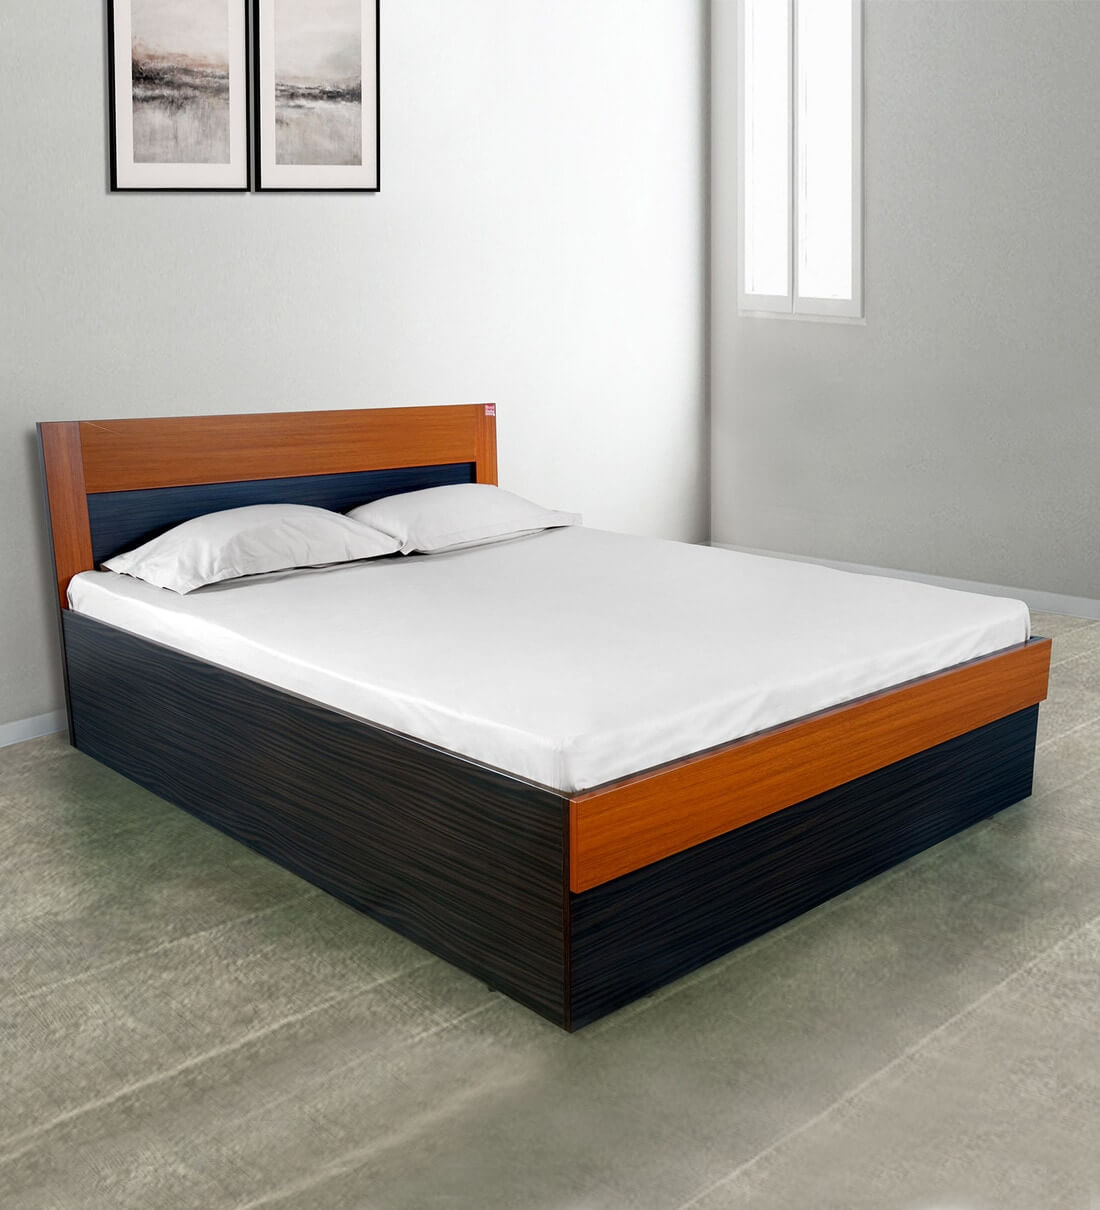 EBONY WOOD BED FRAME IDEAS